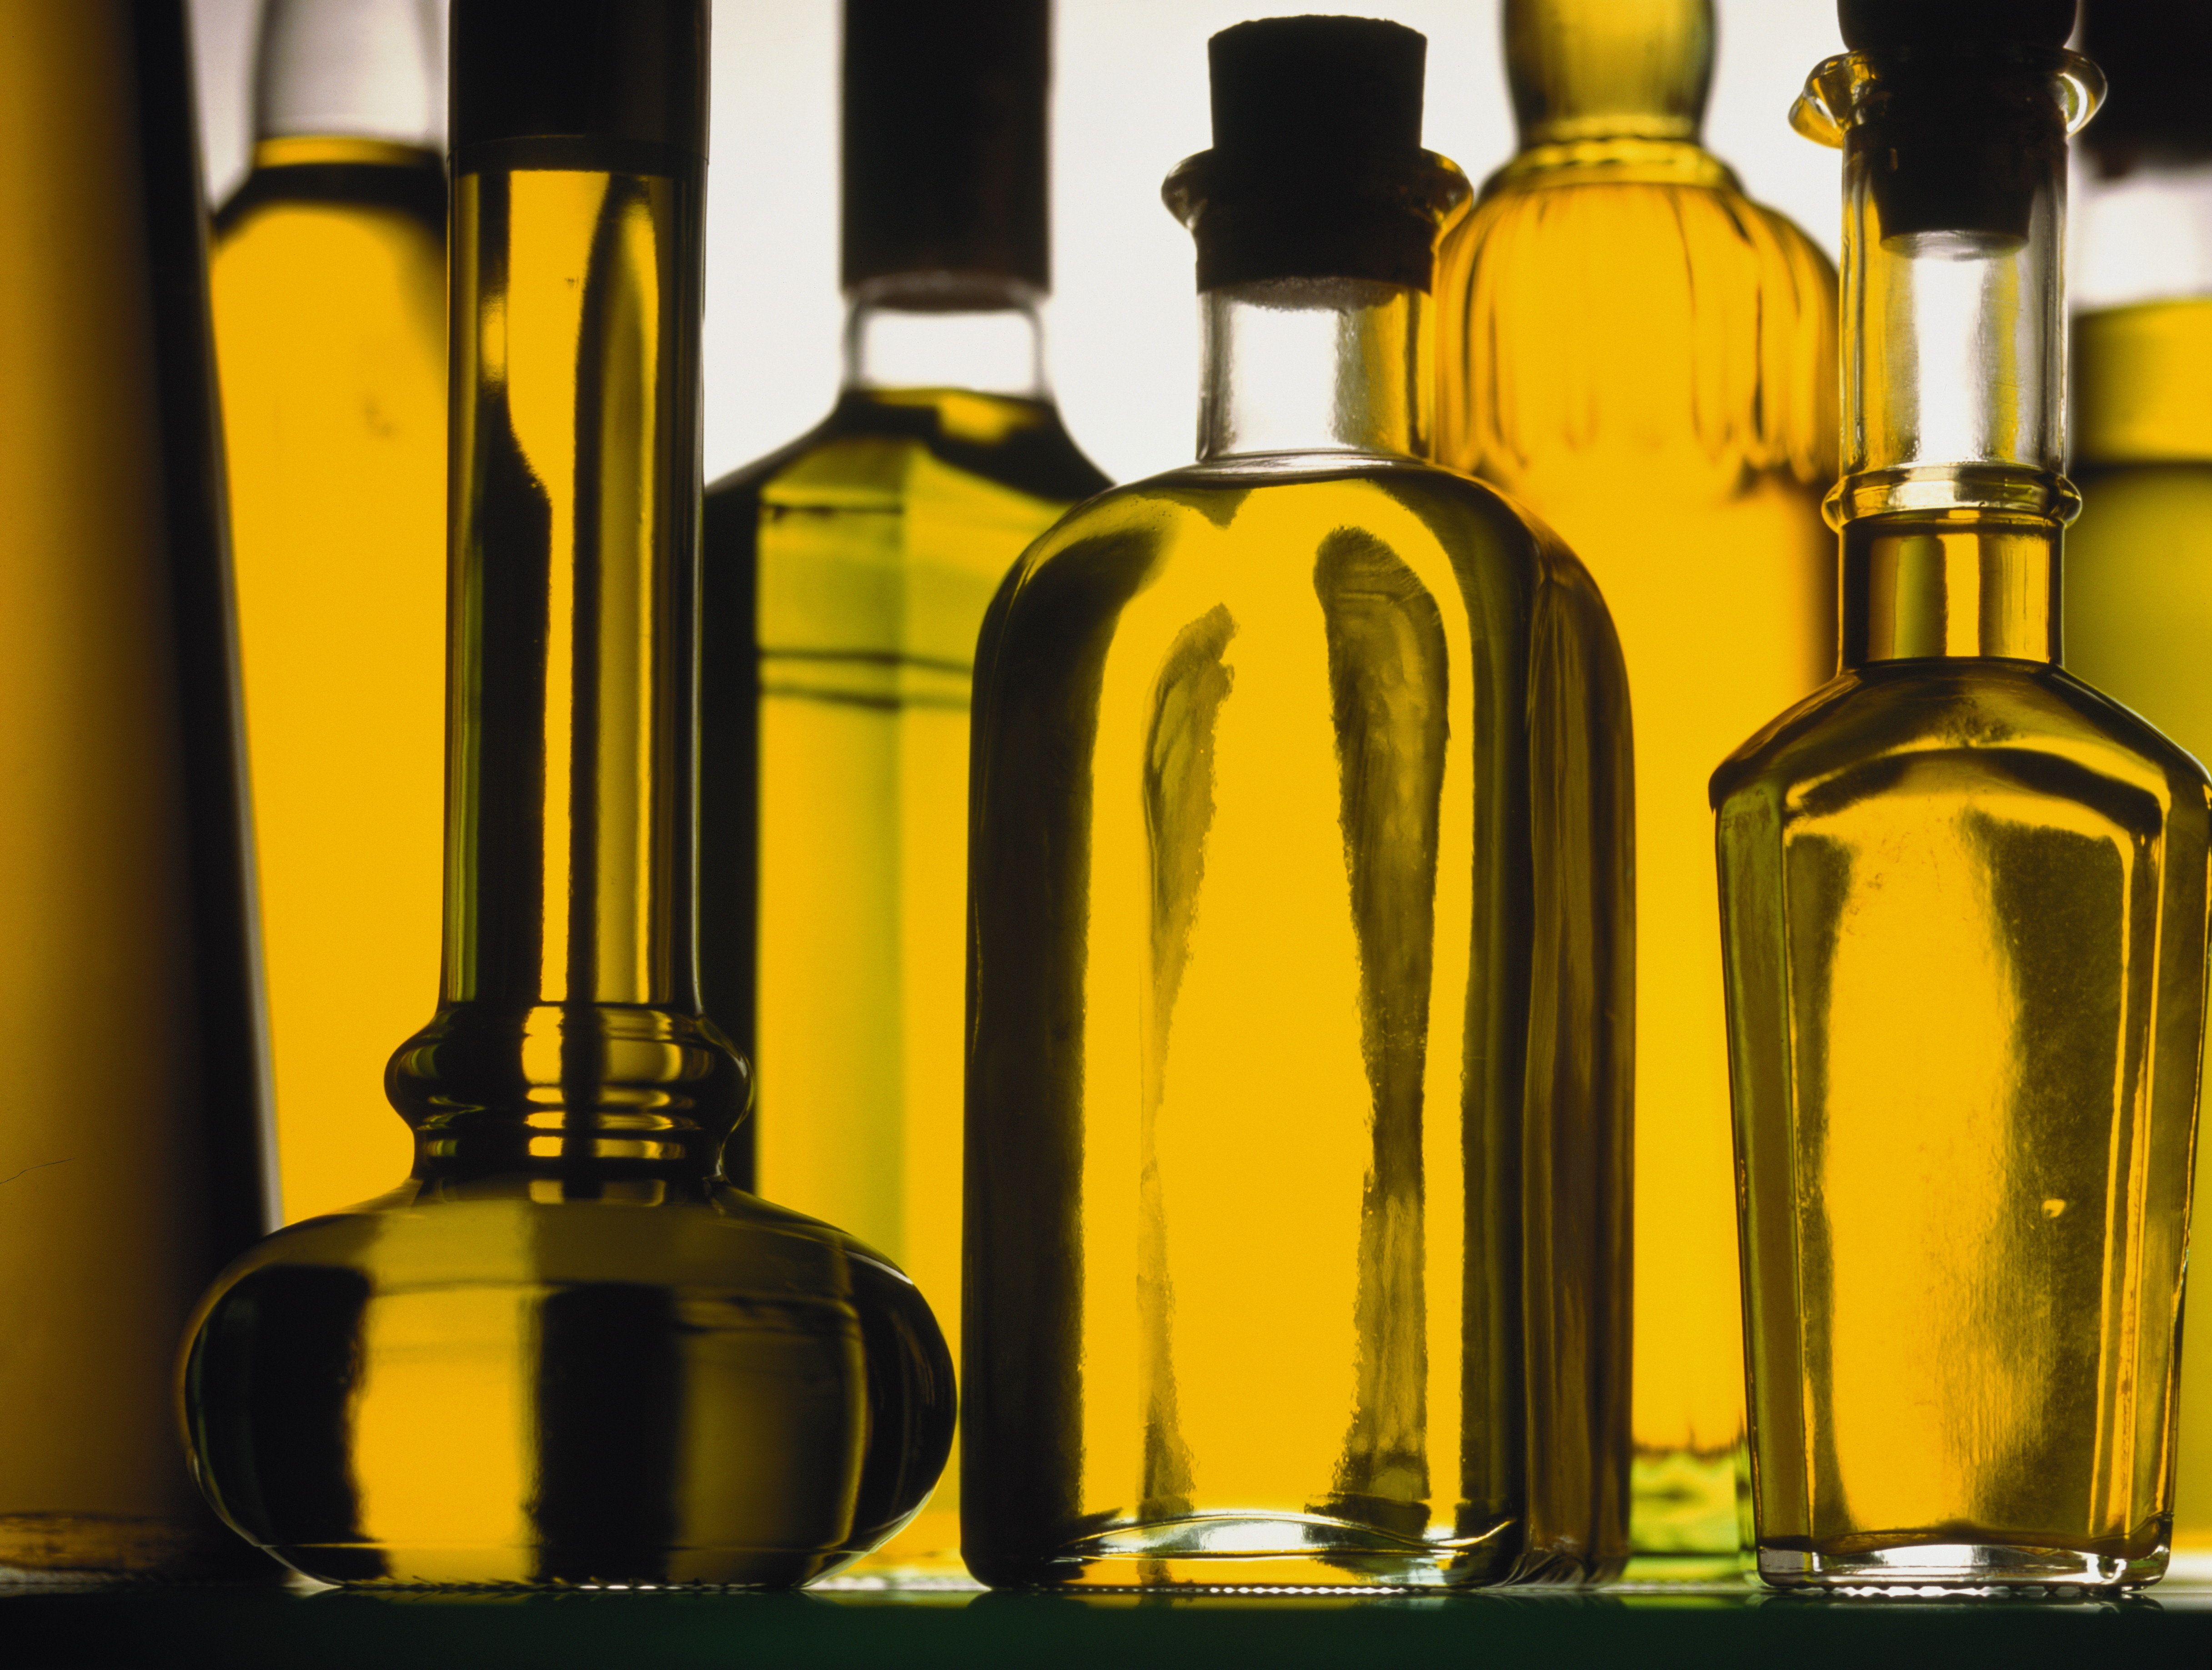 Data from an unpublished trial reveals replacing saturated fats with corn oil doesn't help reduce cardiovascular disease or death.